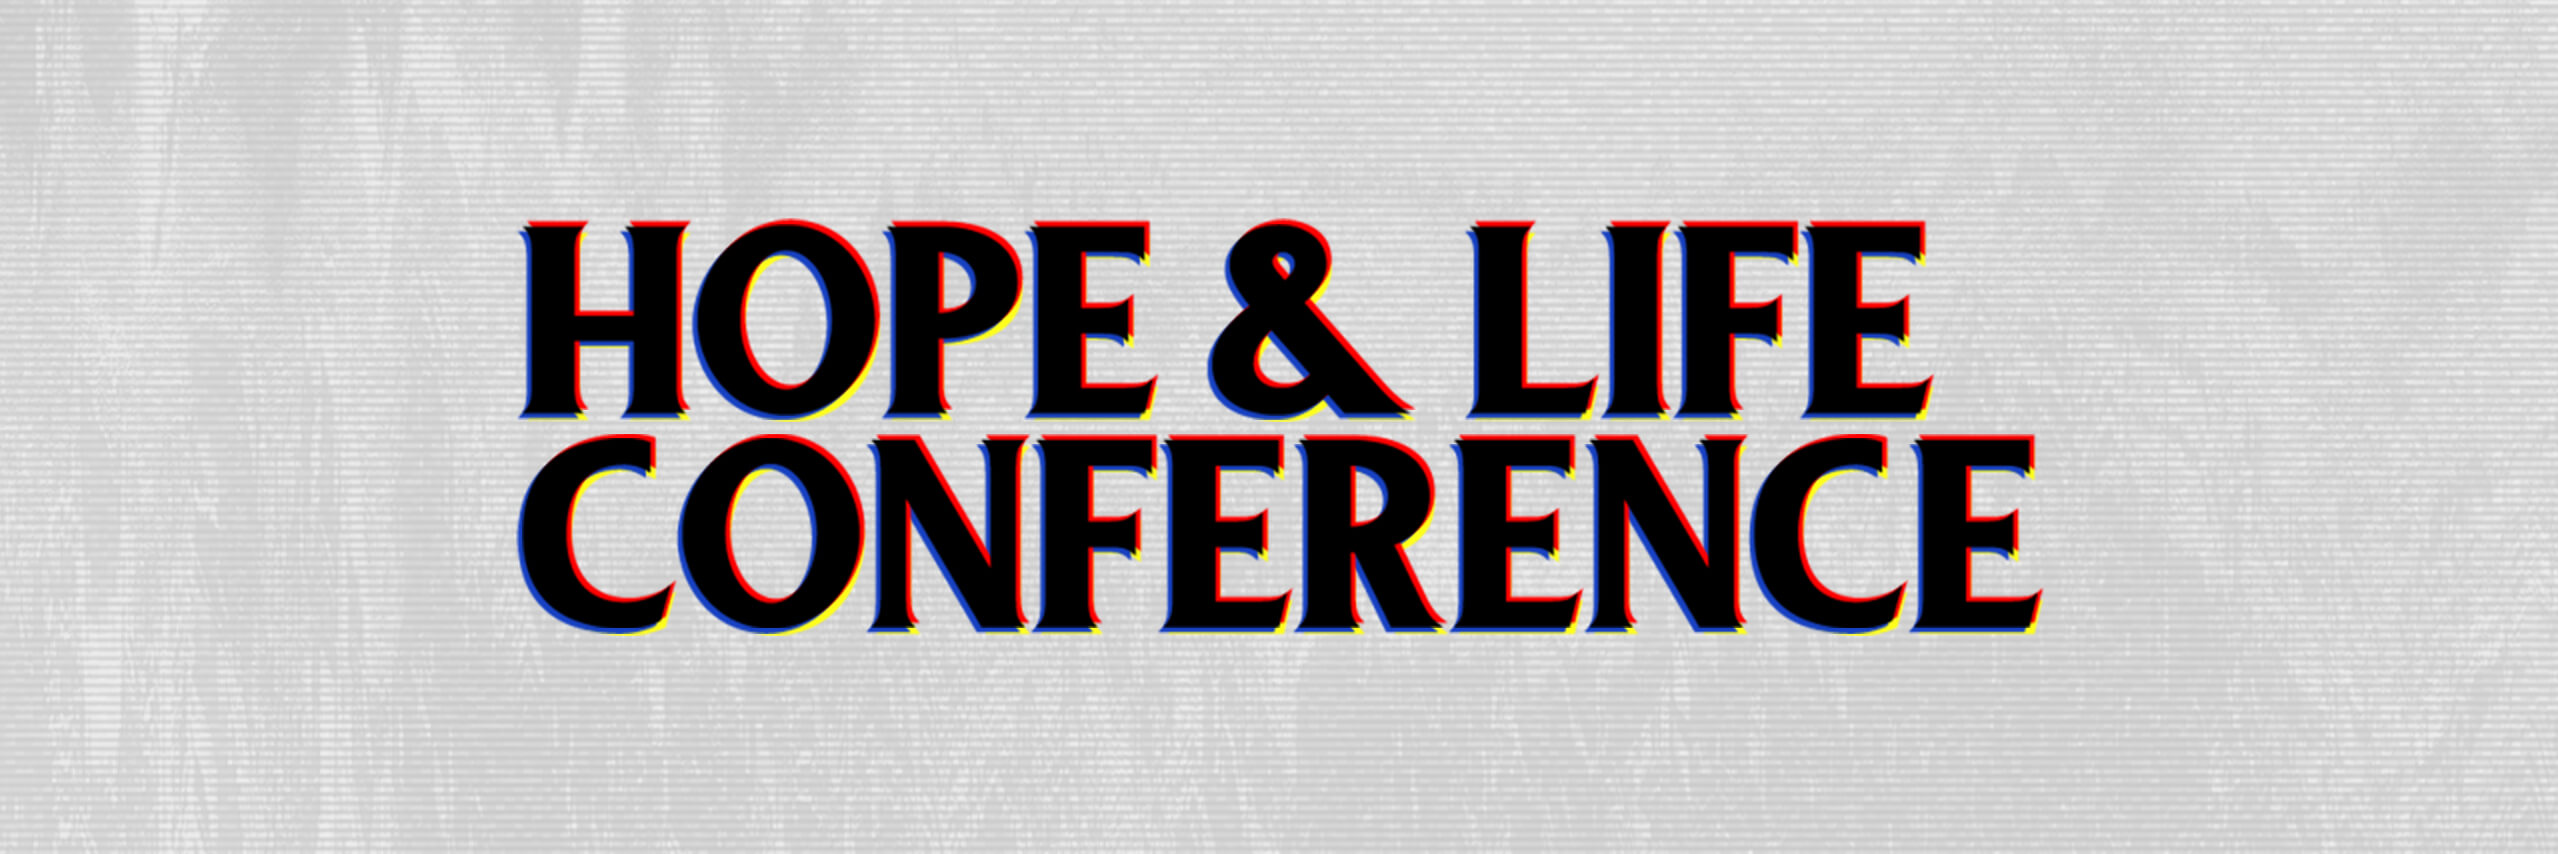 Hope & Life Conference 2019